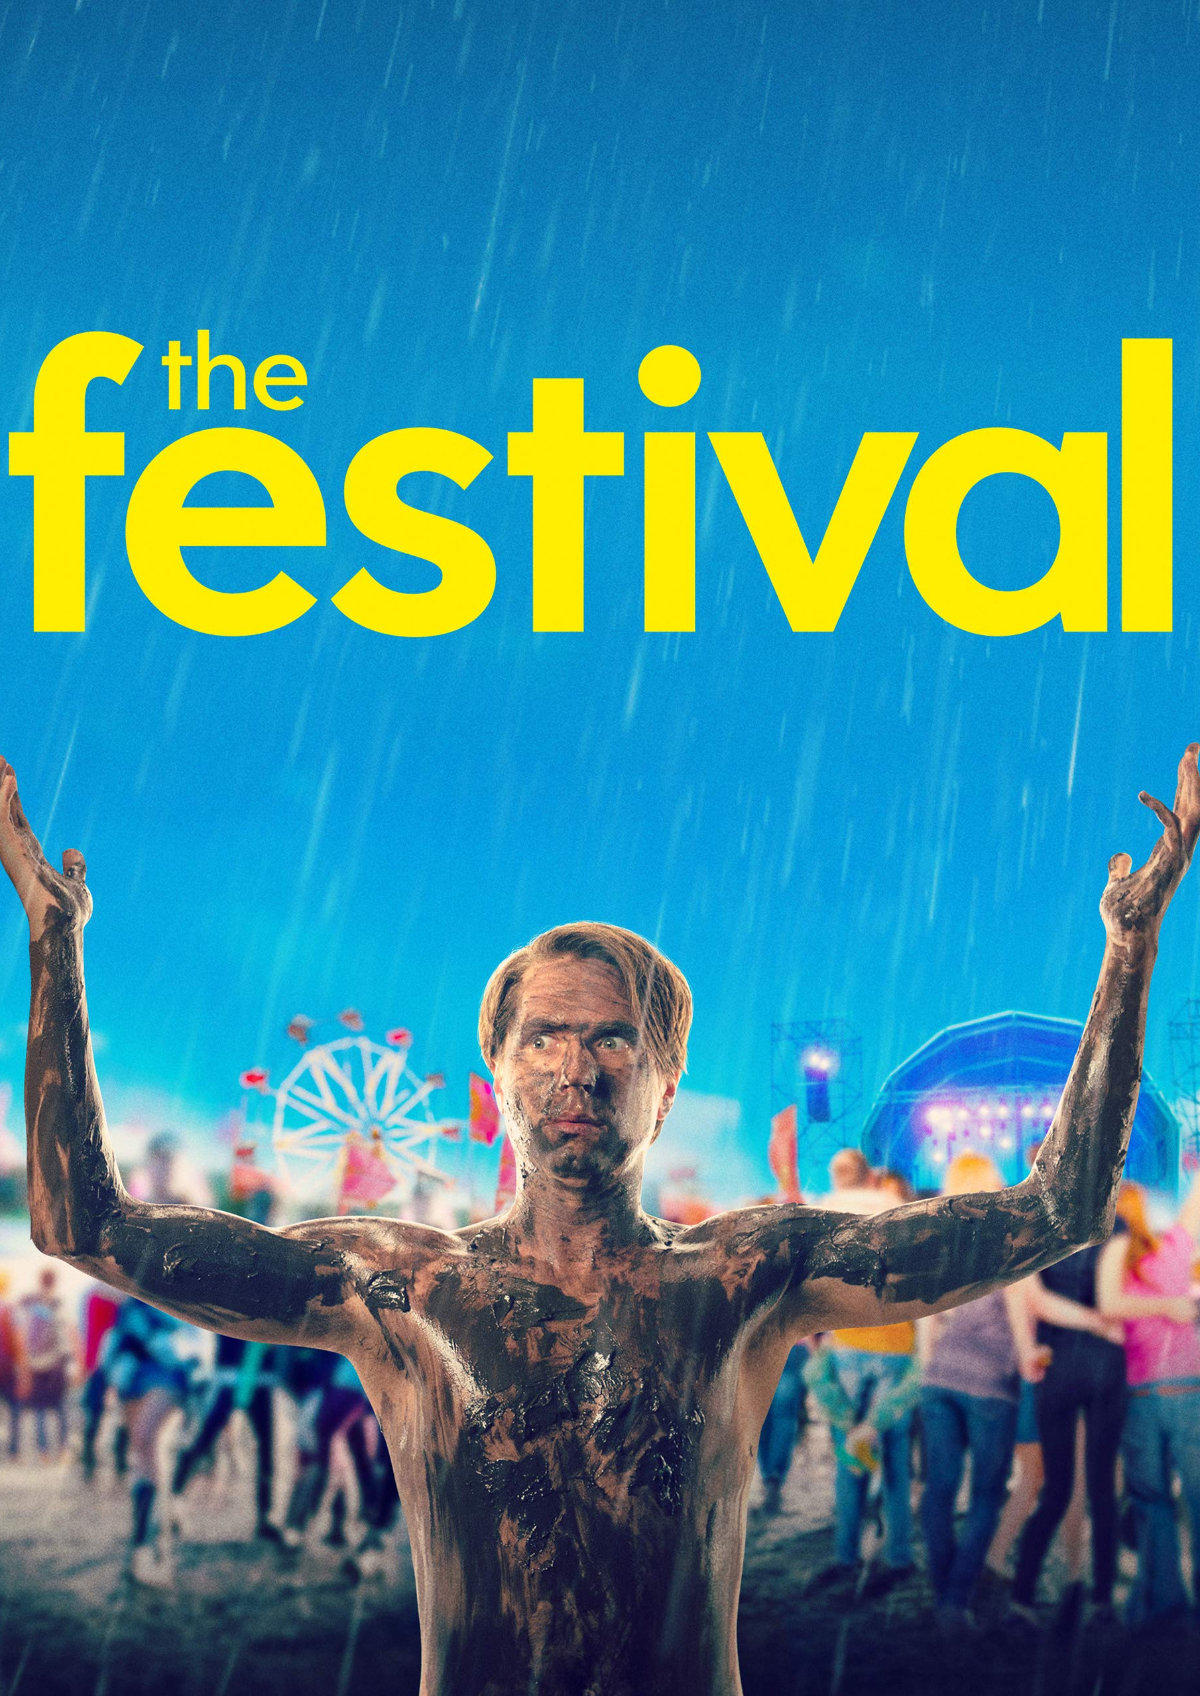 'The Festival' movie poster